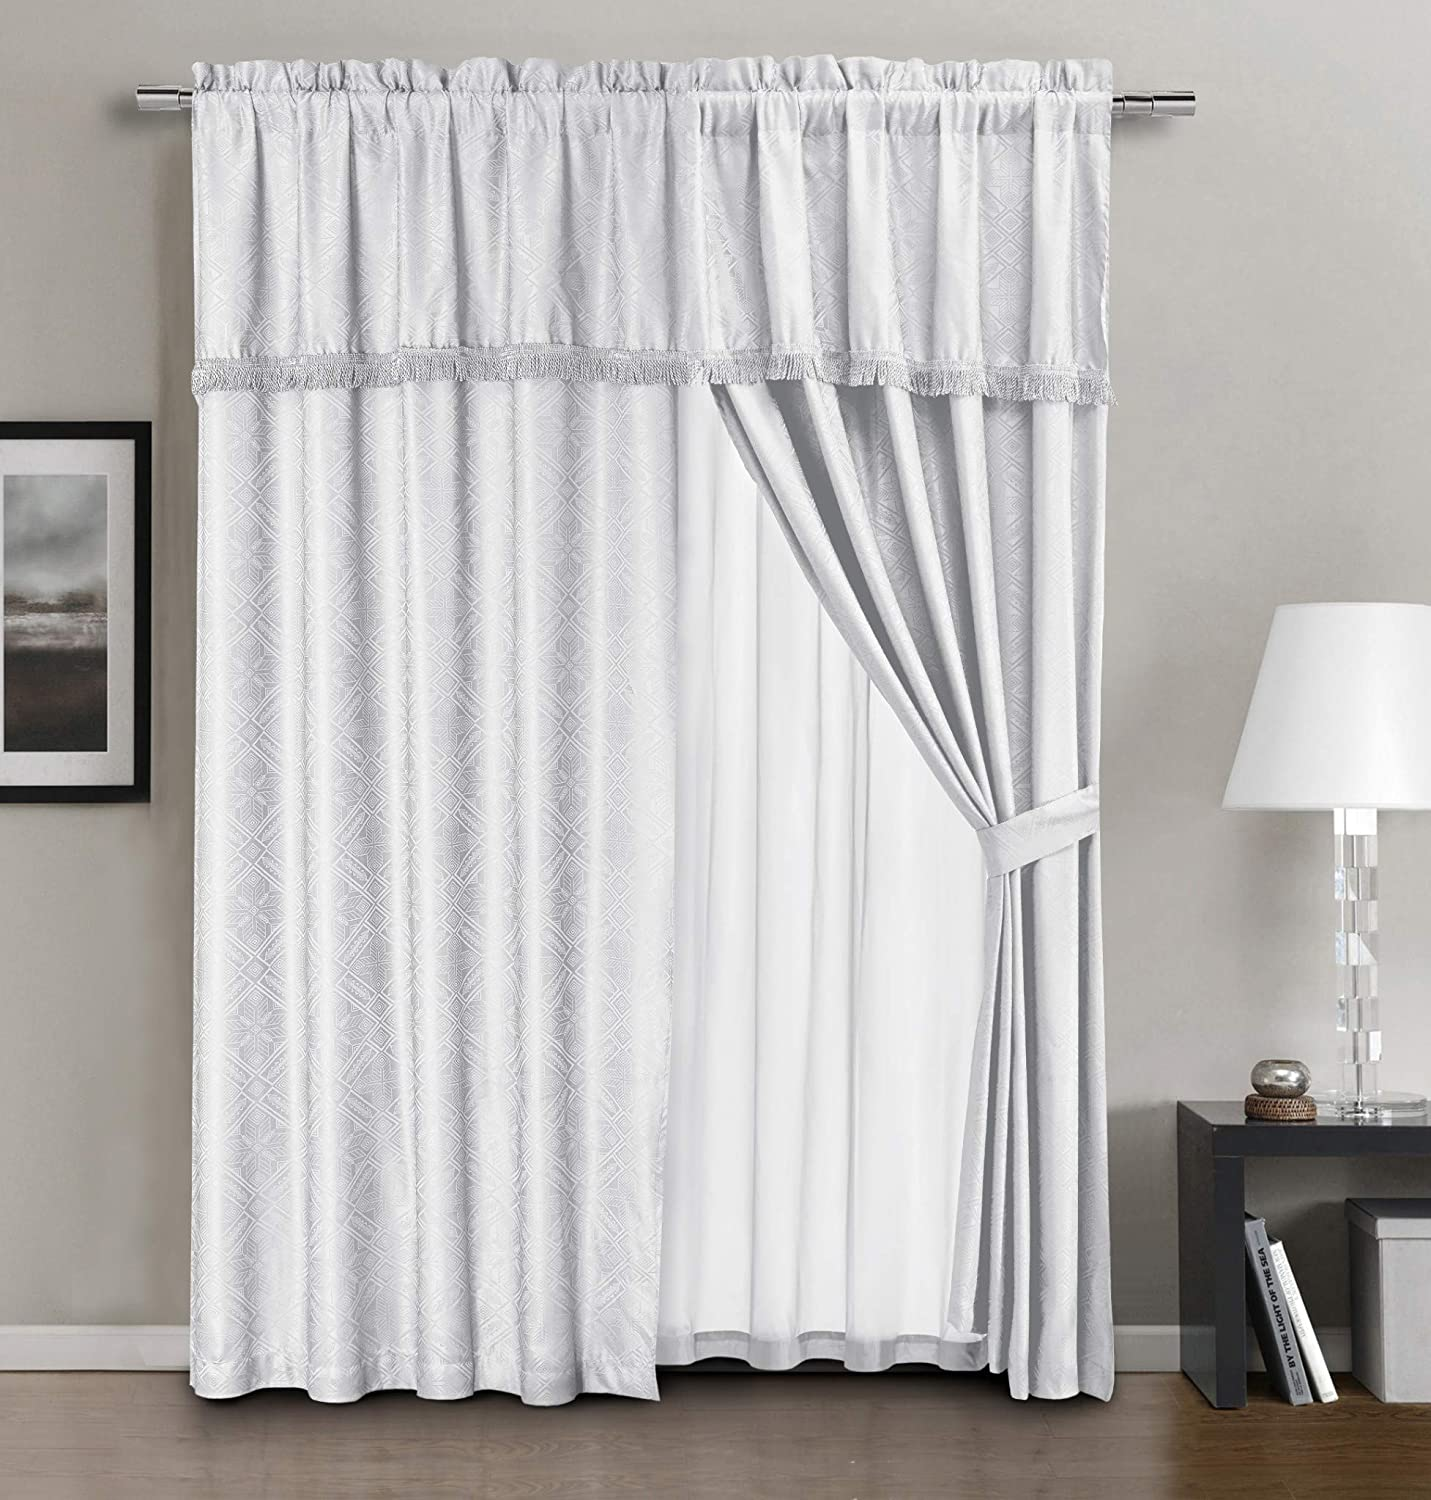 Chezmoi Collection Devon 4-Piece White Diamond Geometric Jacquard Window Curtain/Drape Set - Attached Sheer Backing and Valance